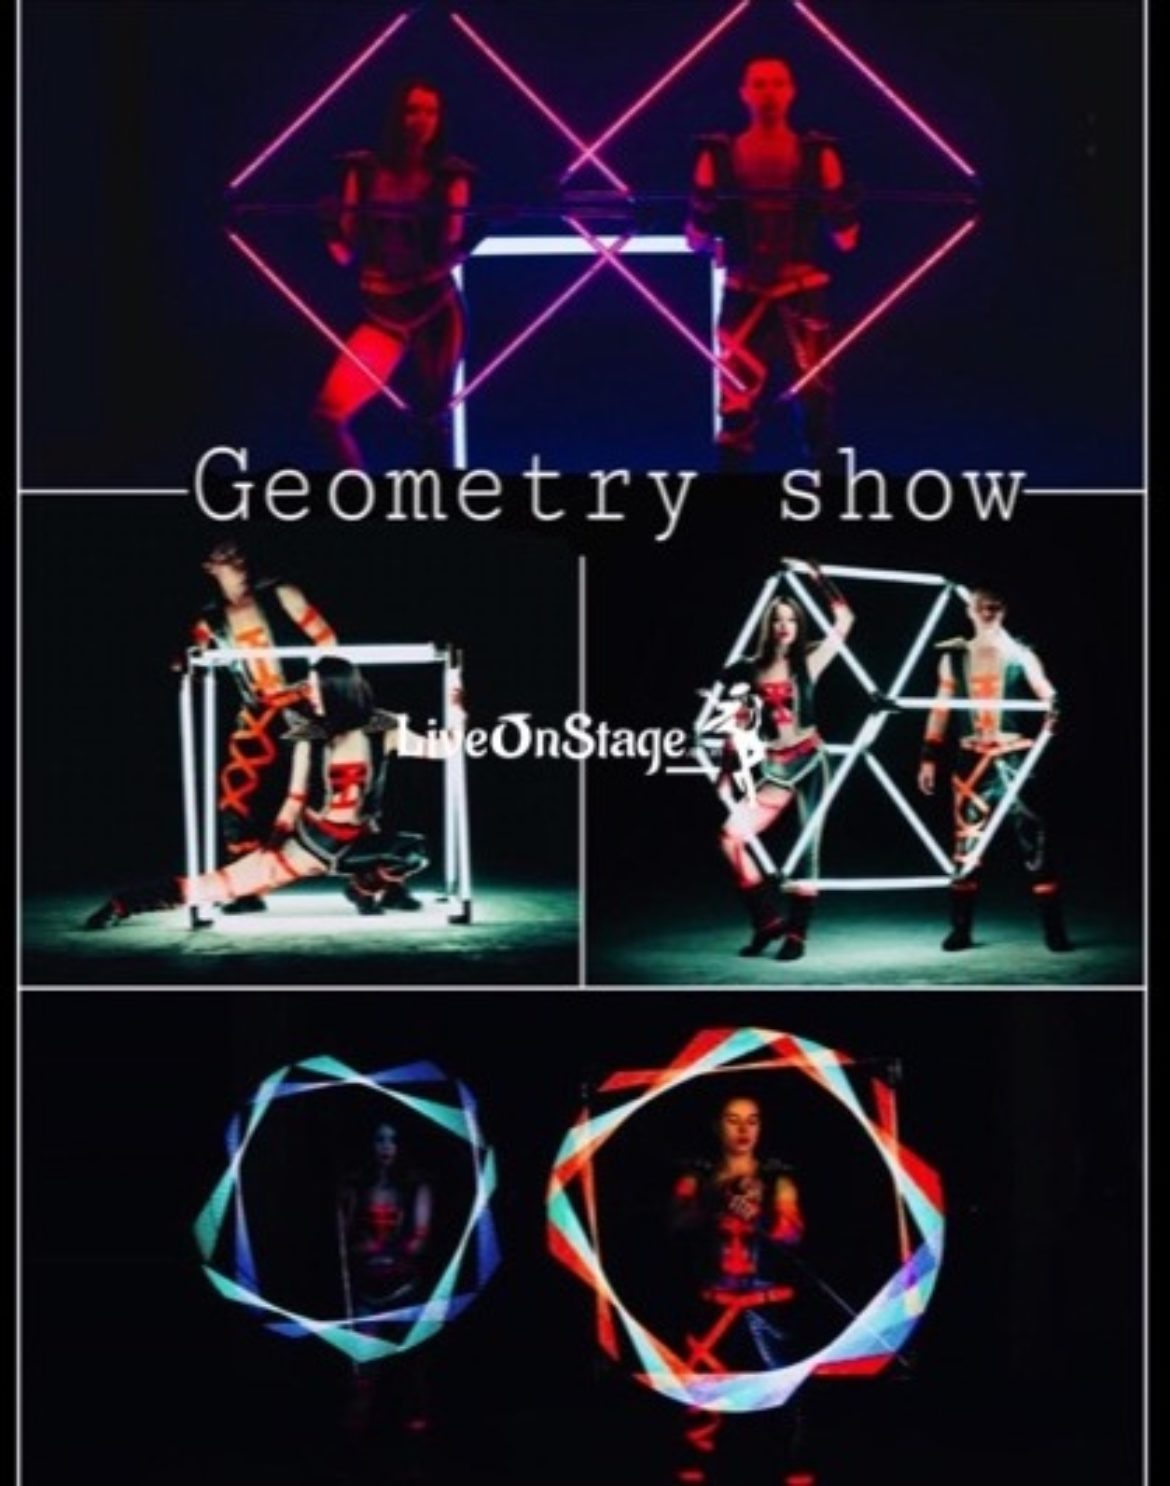 Led Geometry Show, Led Geometry Act, Led Act, UV Act, Interactive Act, Blacklight Show, Live On Stage, Live On Stage Entertainment, Visual Act, Circus Act,